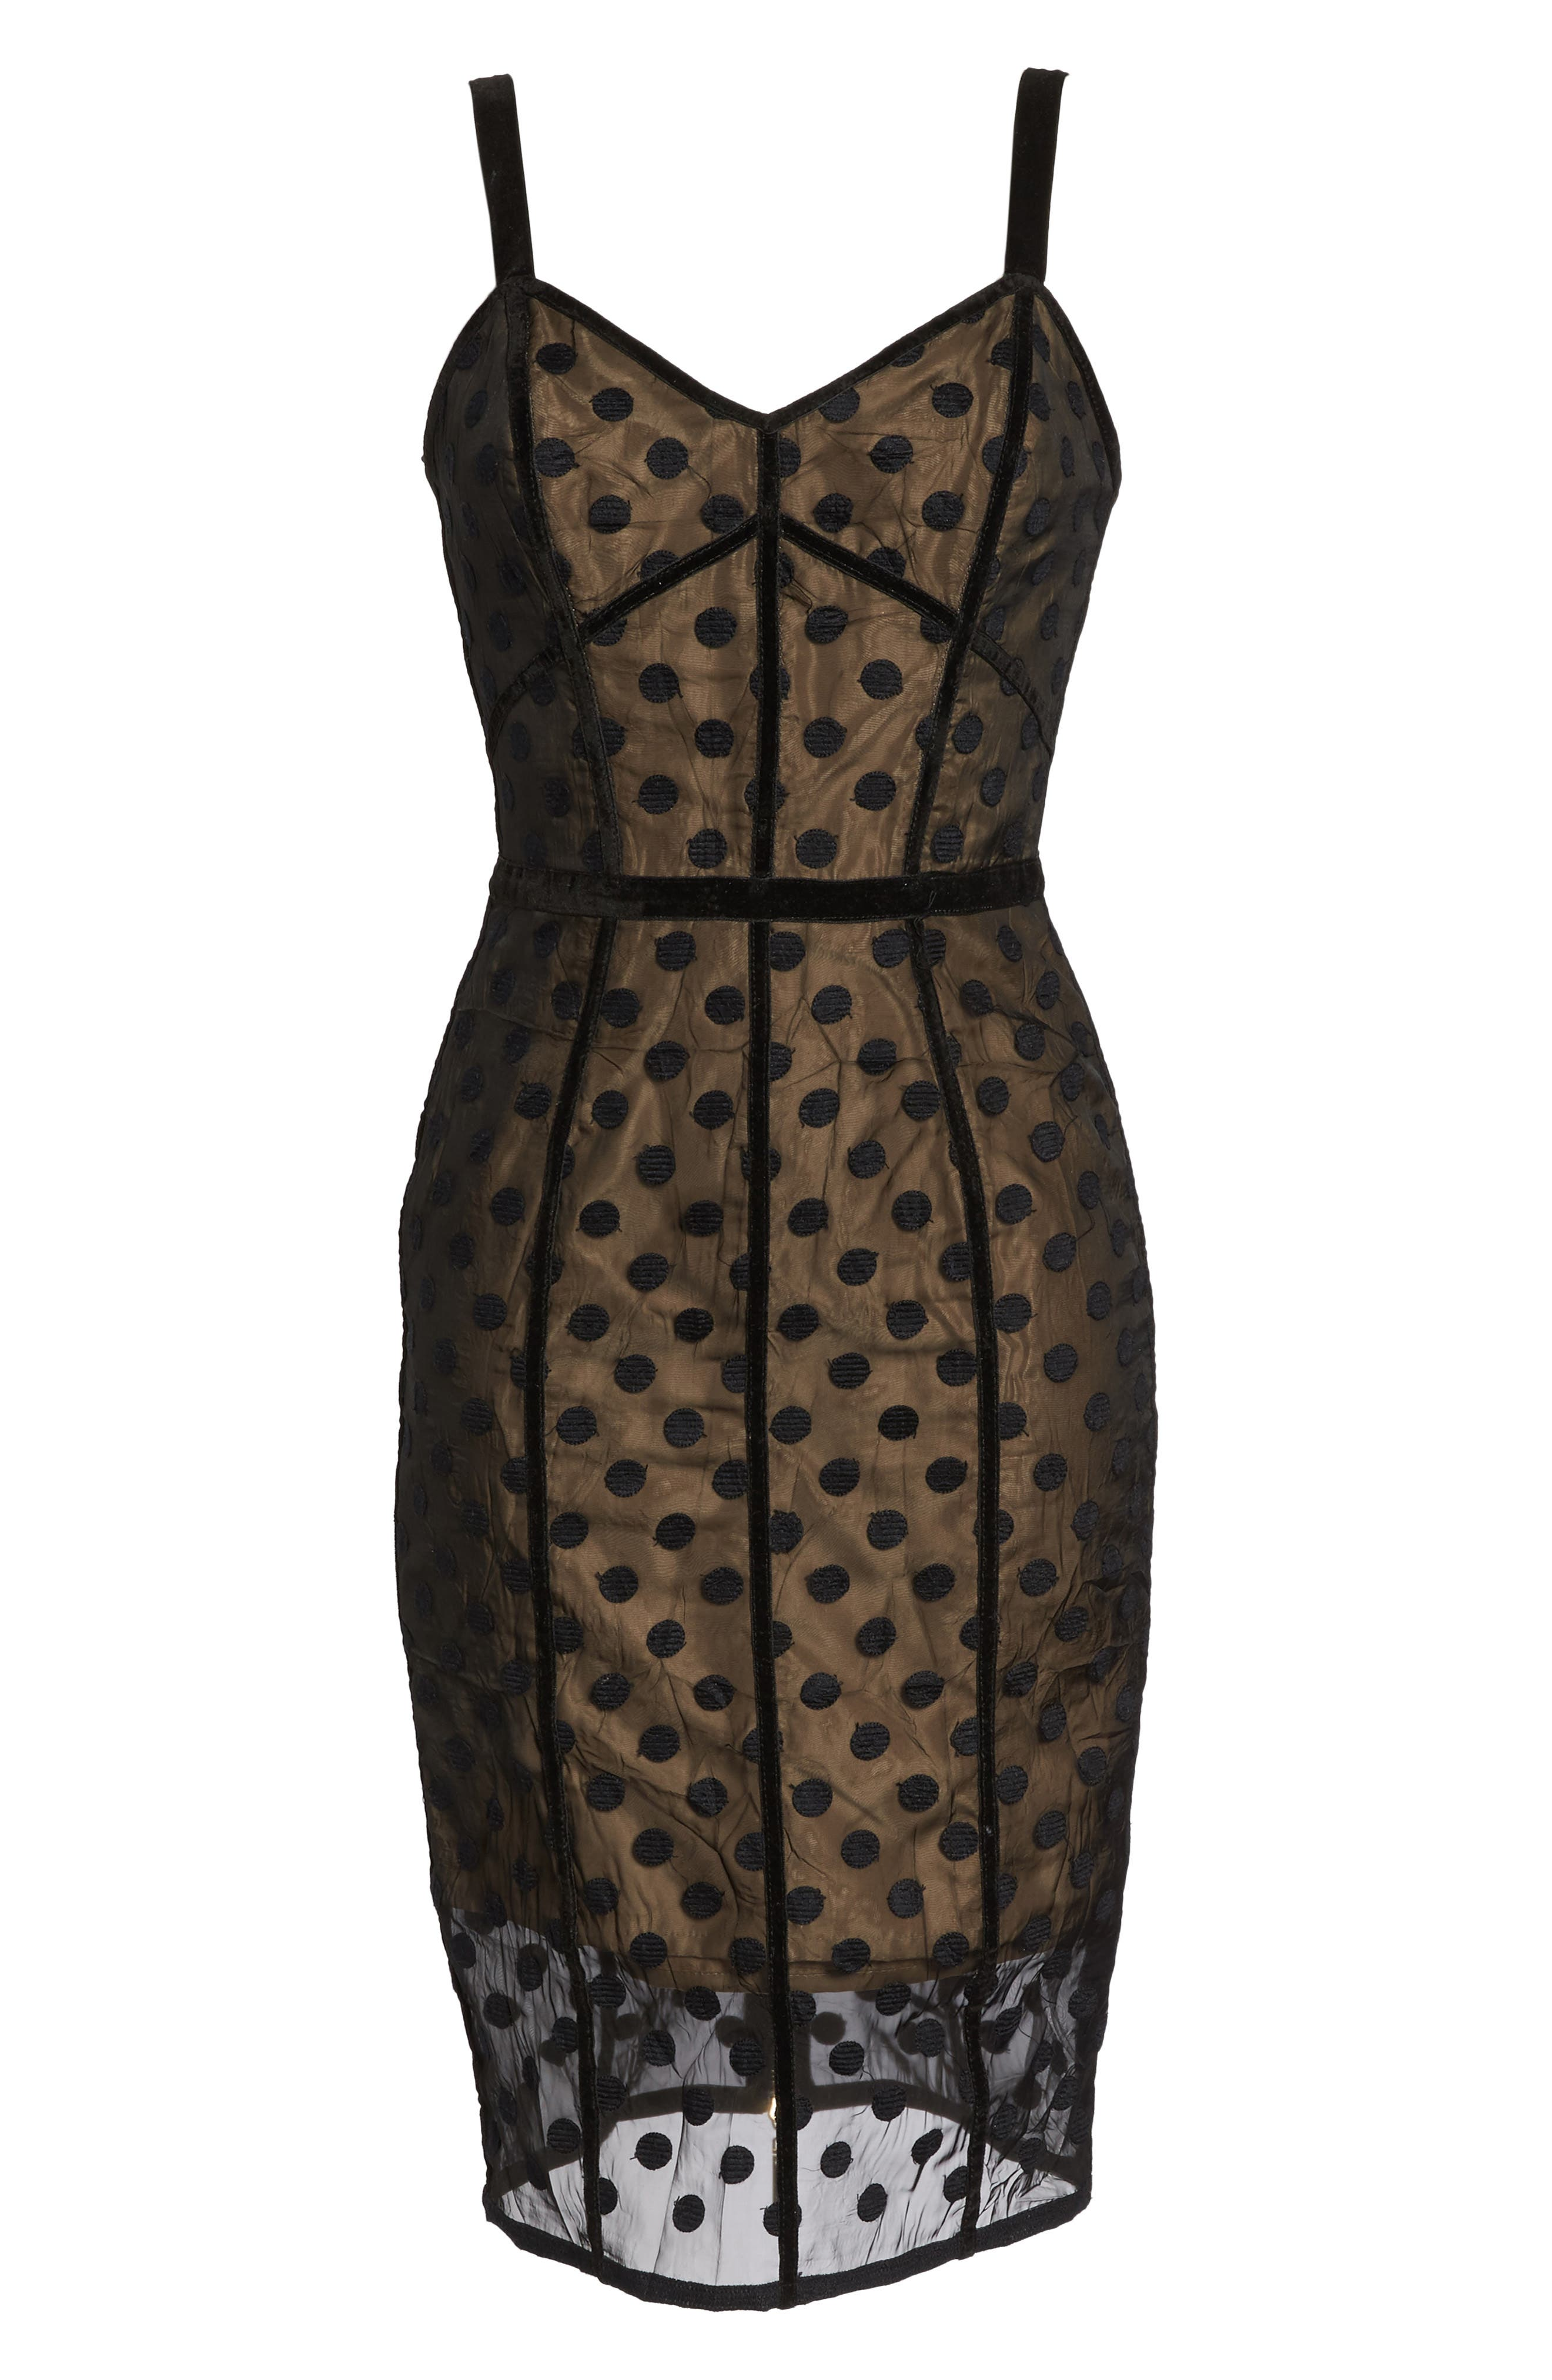 Isabella Noir Dot Embroidered Body-Con Dress,                             Alternate thumbnail 10, color,                             Black/ Nude